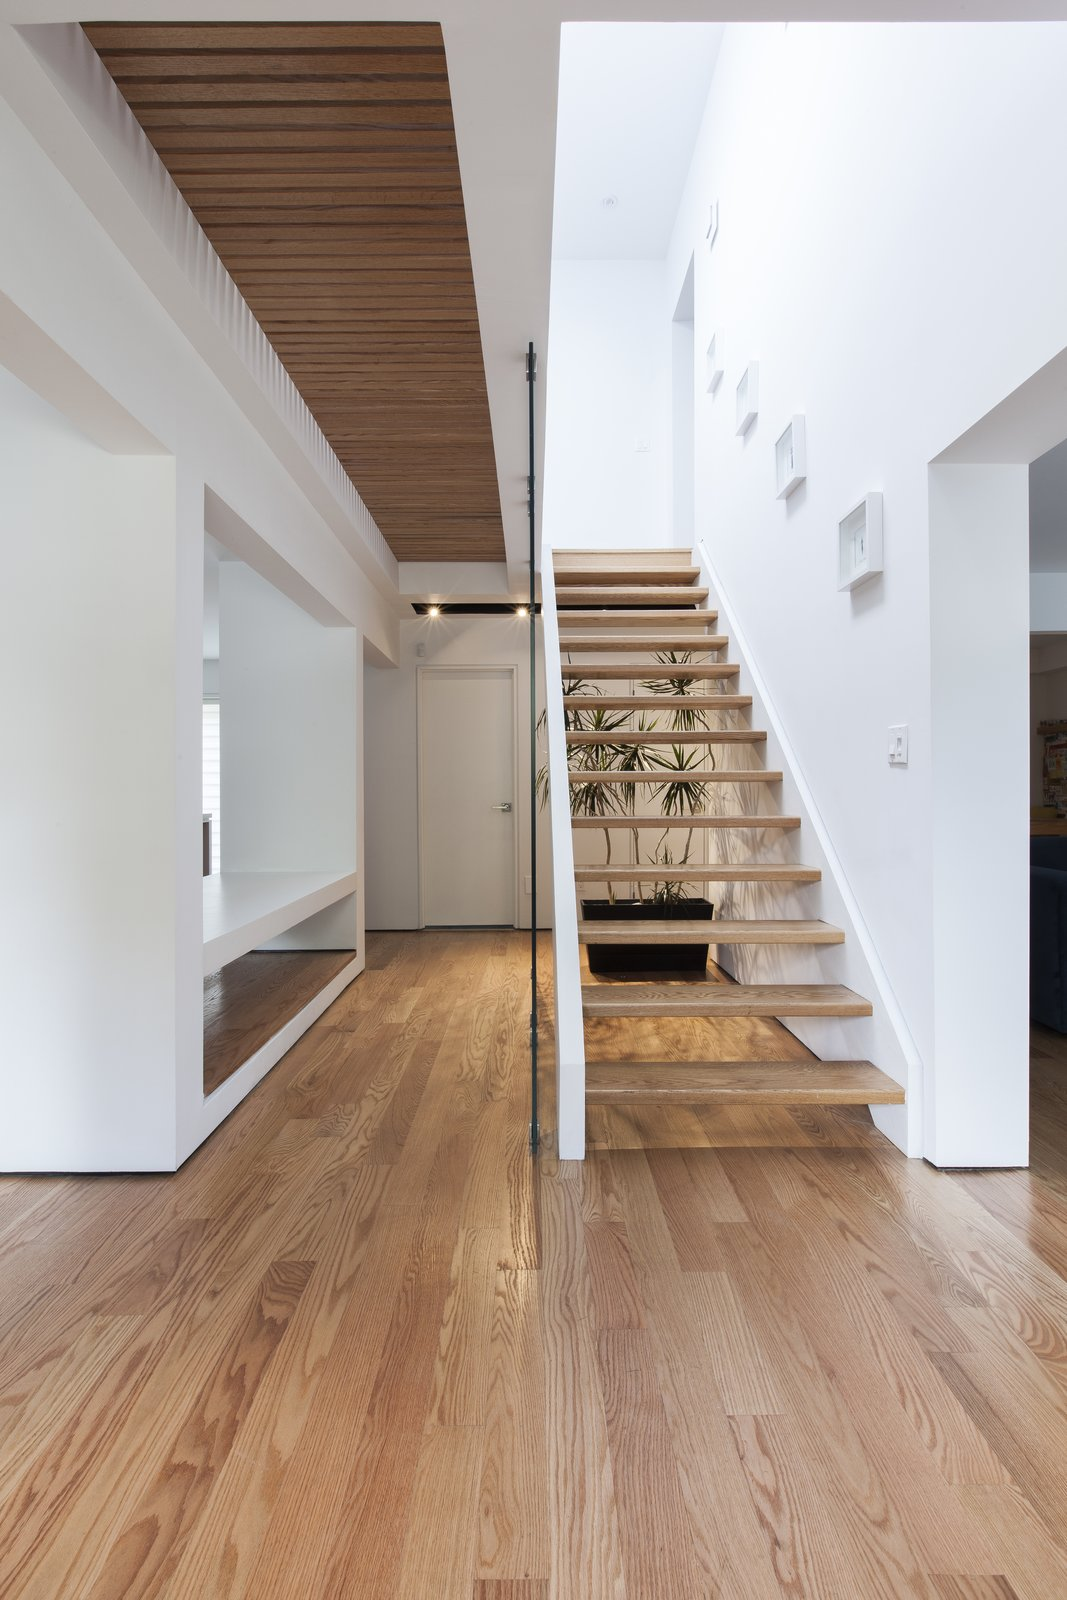 Staircase and Wood Tread A staircase forms the core of the 1,800-square-foot home, with a symmetrical alcove on either side. The steps, hardwood floors, and slatted bridge on the second floor are made of white oak, providing a rich contrast with its white walls.  190+ Best Modern Staircase Ideas from An Airy Toronto Home with Incredible Double-Height Rooms